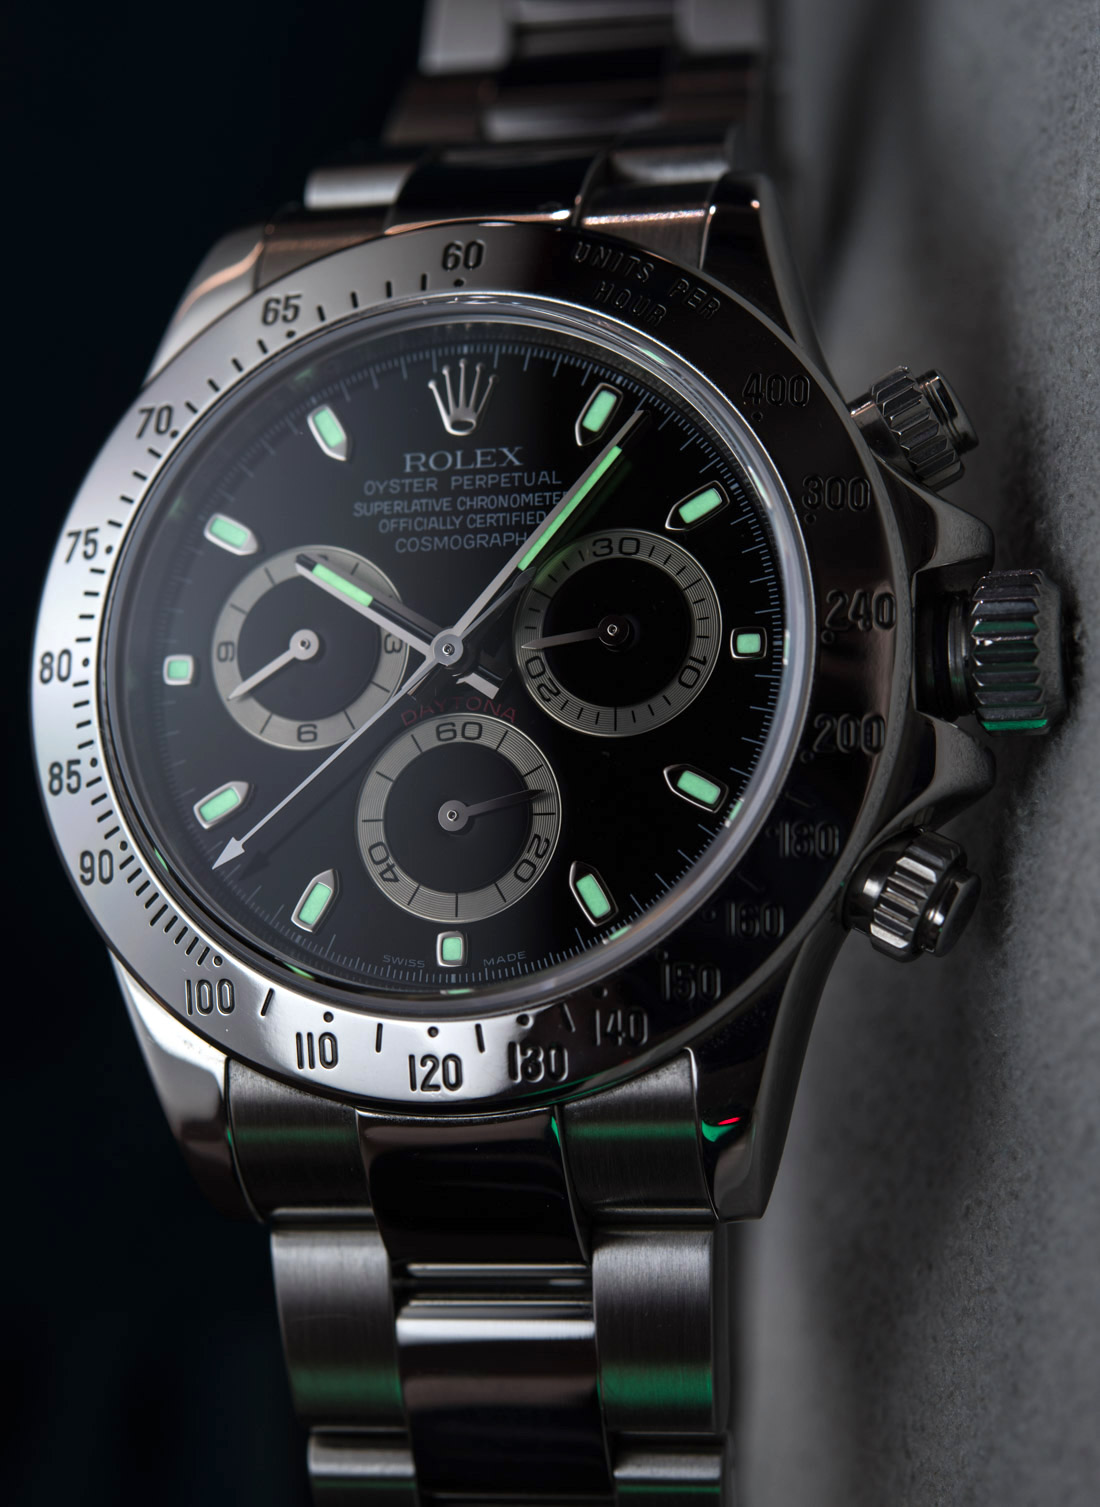 Black Rolex Rolex Daytona 116520 In Steel With Black Dial Watch Review